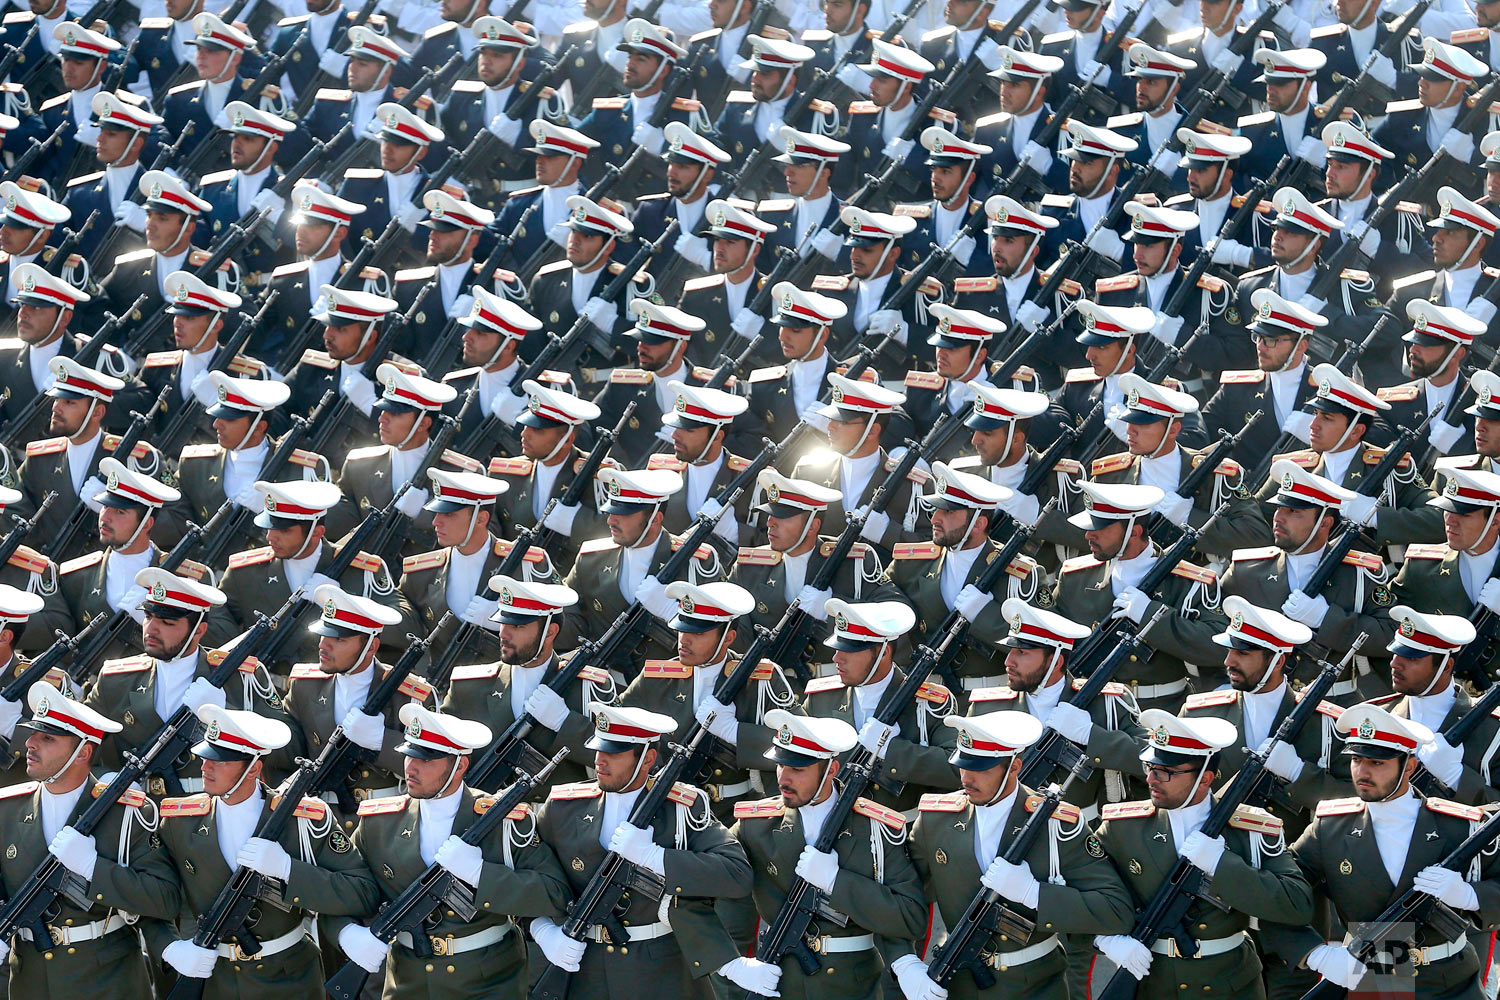 Troops march in a parade marking National Army Day in front of the mausoleum of the late revolutionary founder Ayatollah Khomeini, outside Tehran, Iran, Wednesday, April 18, 2018. (AP Photo/Ebrahim Noroozi)